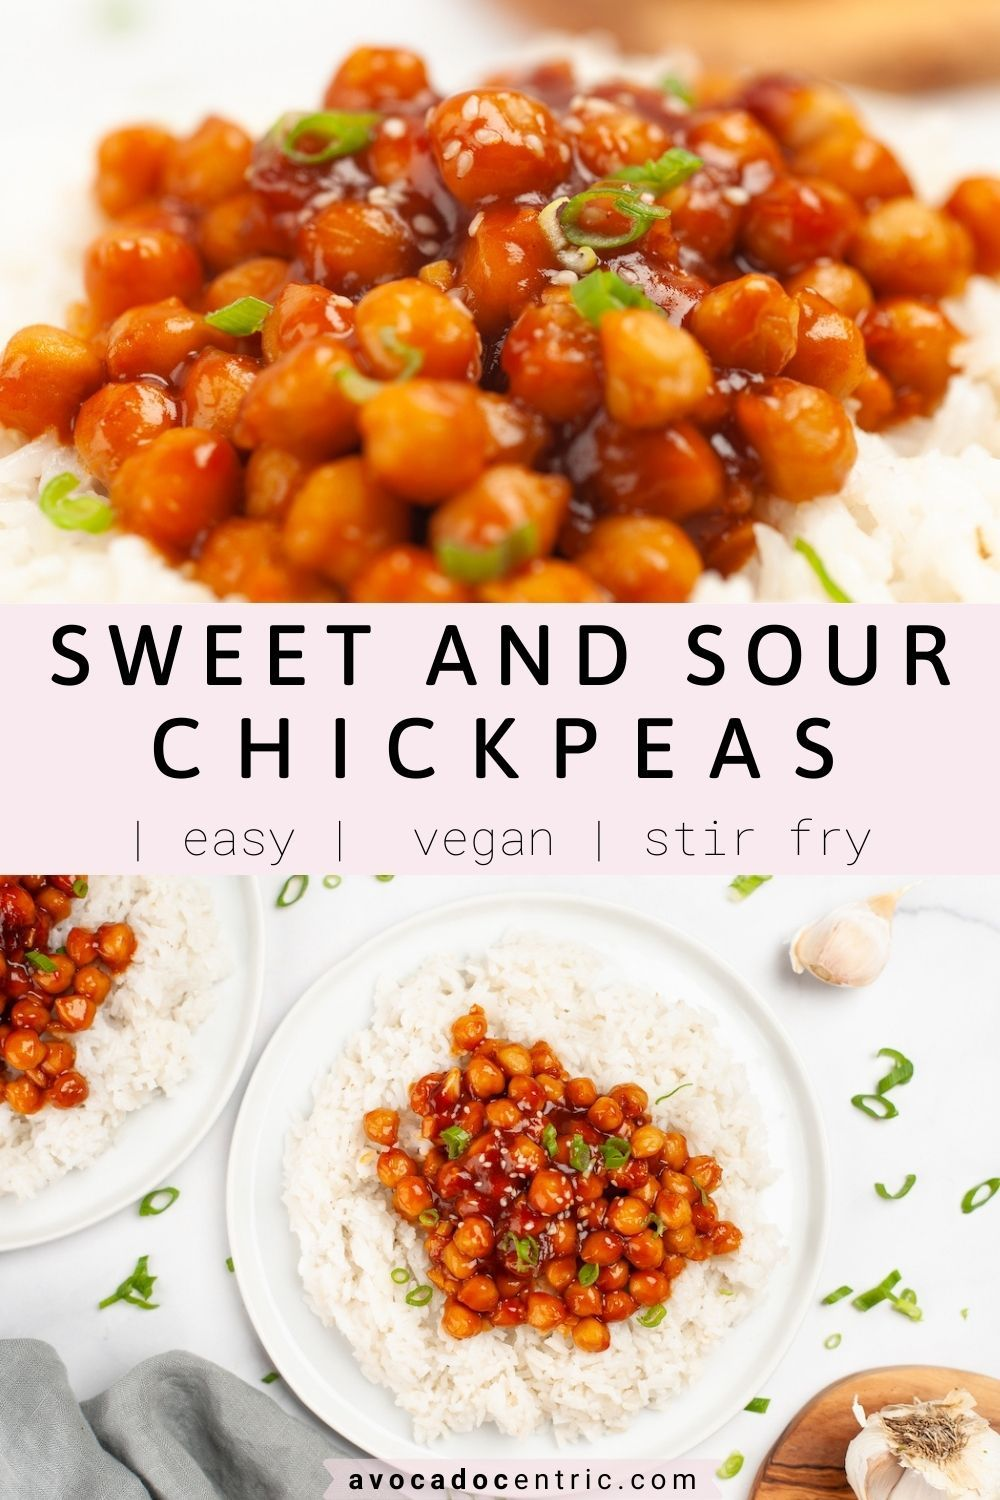 Sweet And Sour Chickpeas Vegan Easy Avocado Centric Recipe In 2020 Vegan Dinner Recipes Vegetarian Recipes Healthy Vegan Recipes Easy